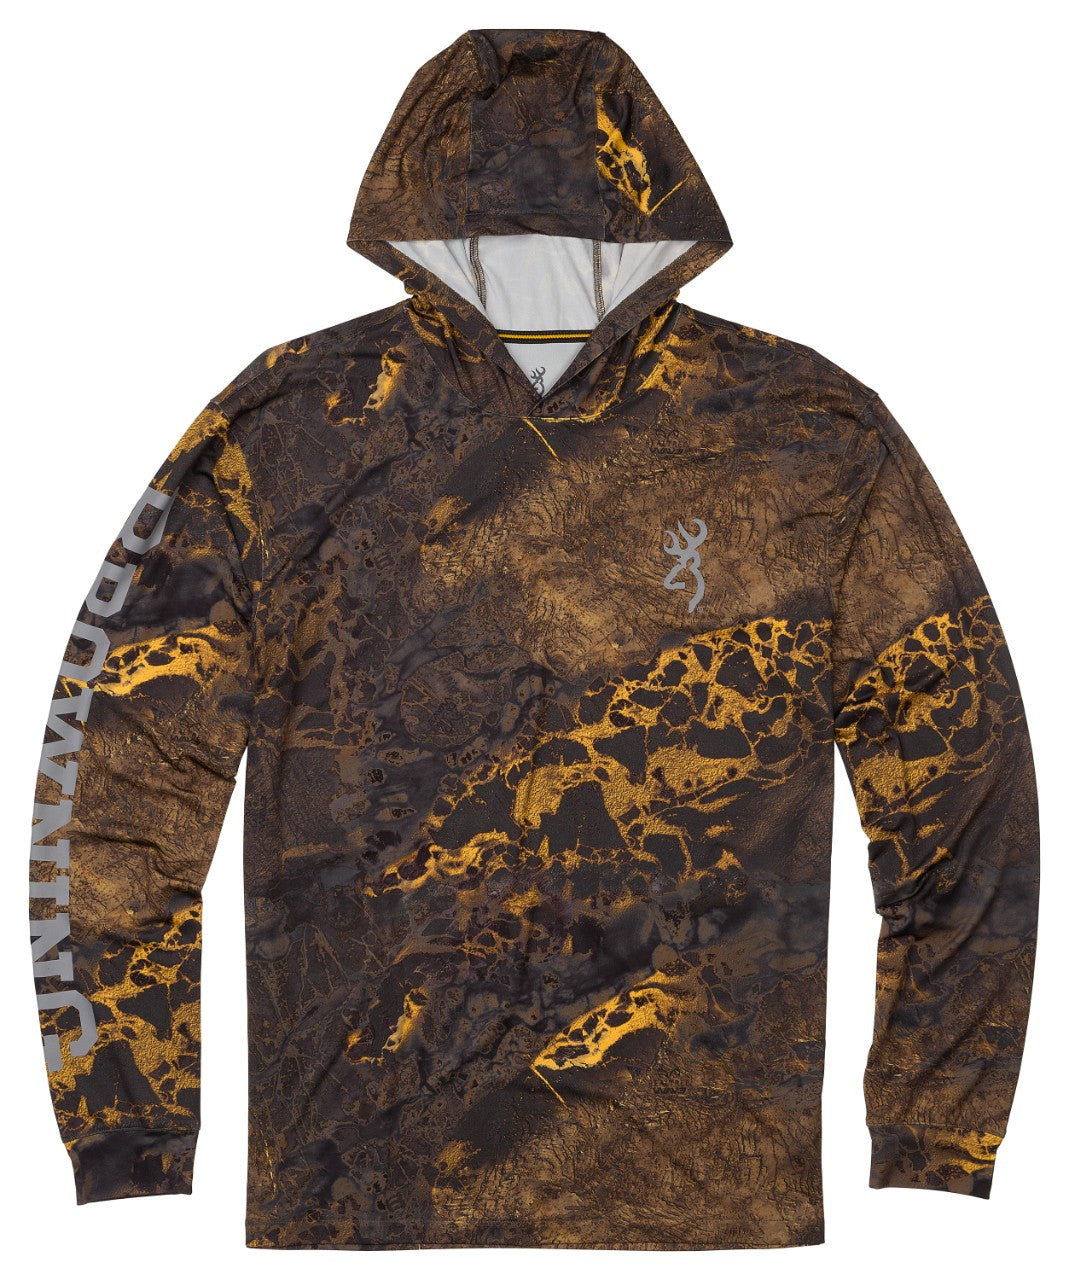 SHT,HOODED,LS,TECH,RTW3 GOLD,L